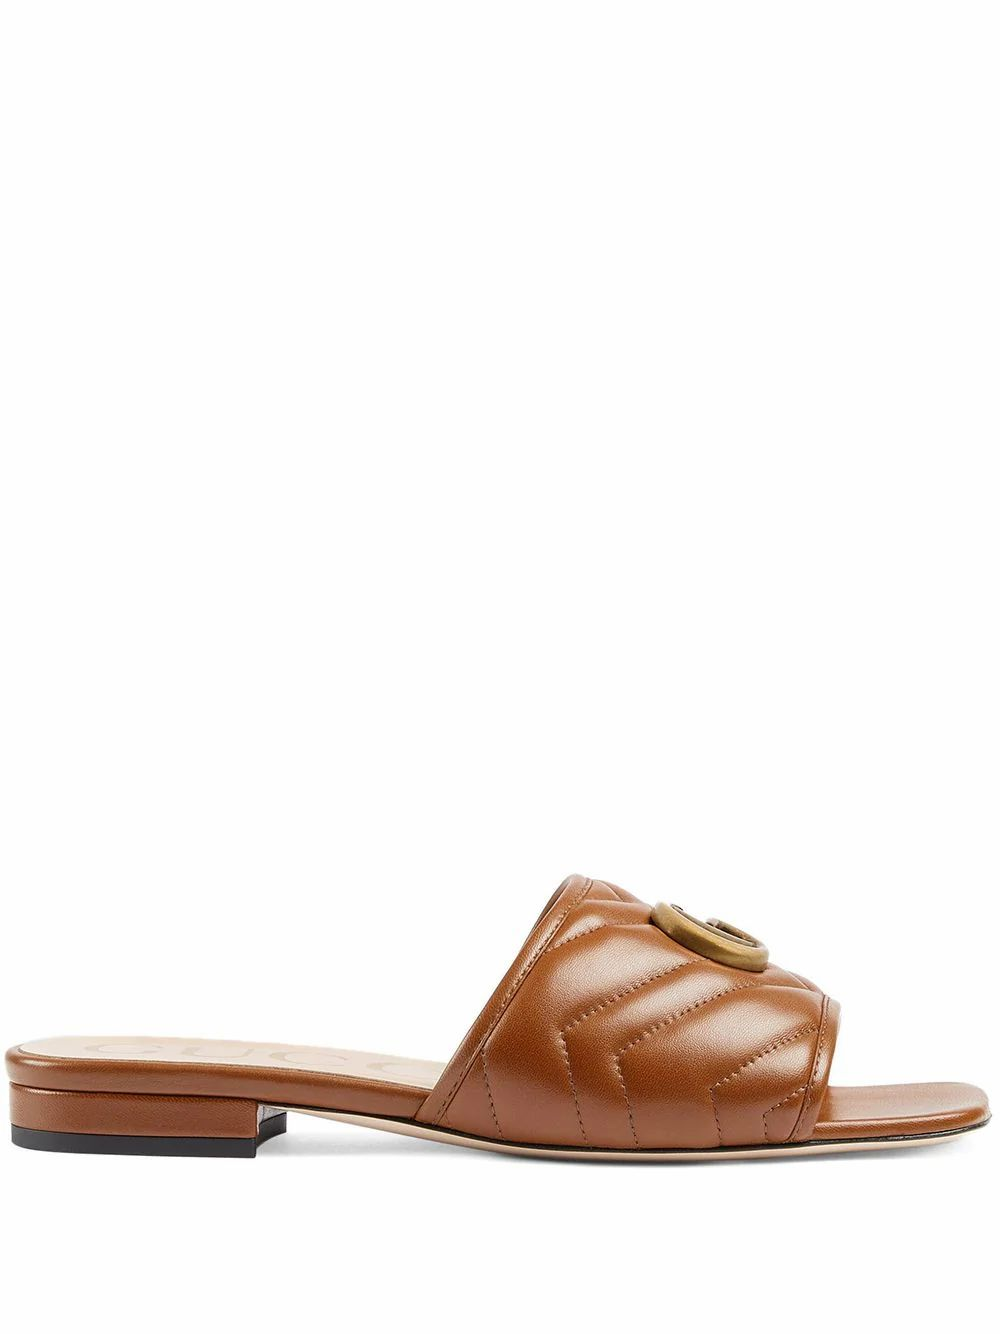 Gucci Leathers GUCCI WOMEN'S BROWN LEATHER SANDALS